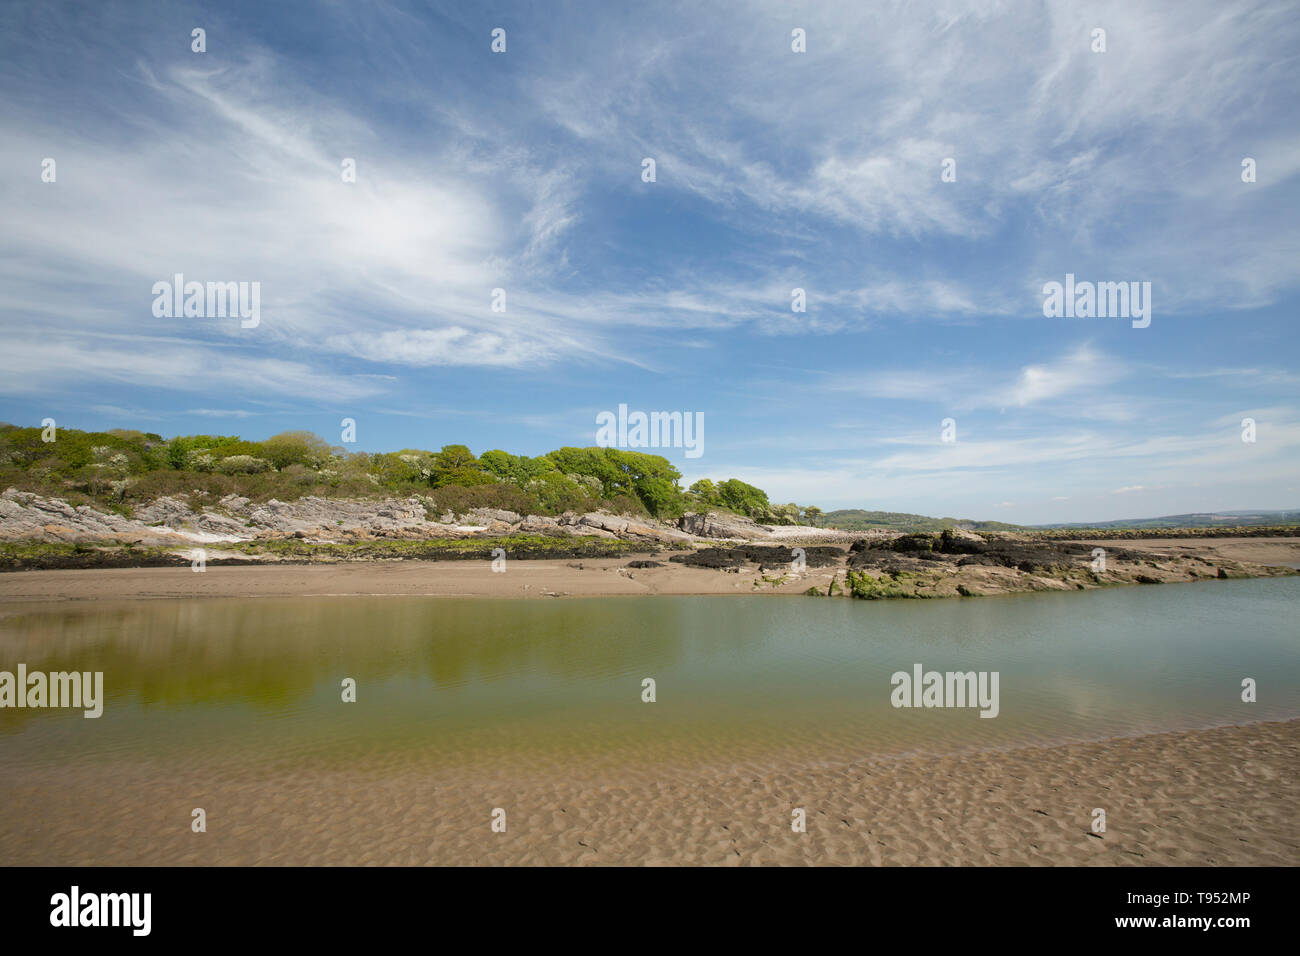 A view of an estuary channel close to Jenny Brown's Point at low tide near the village of Silverdale close to the edge of Morecambe Bay. The bay is no - Stock Image